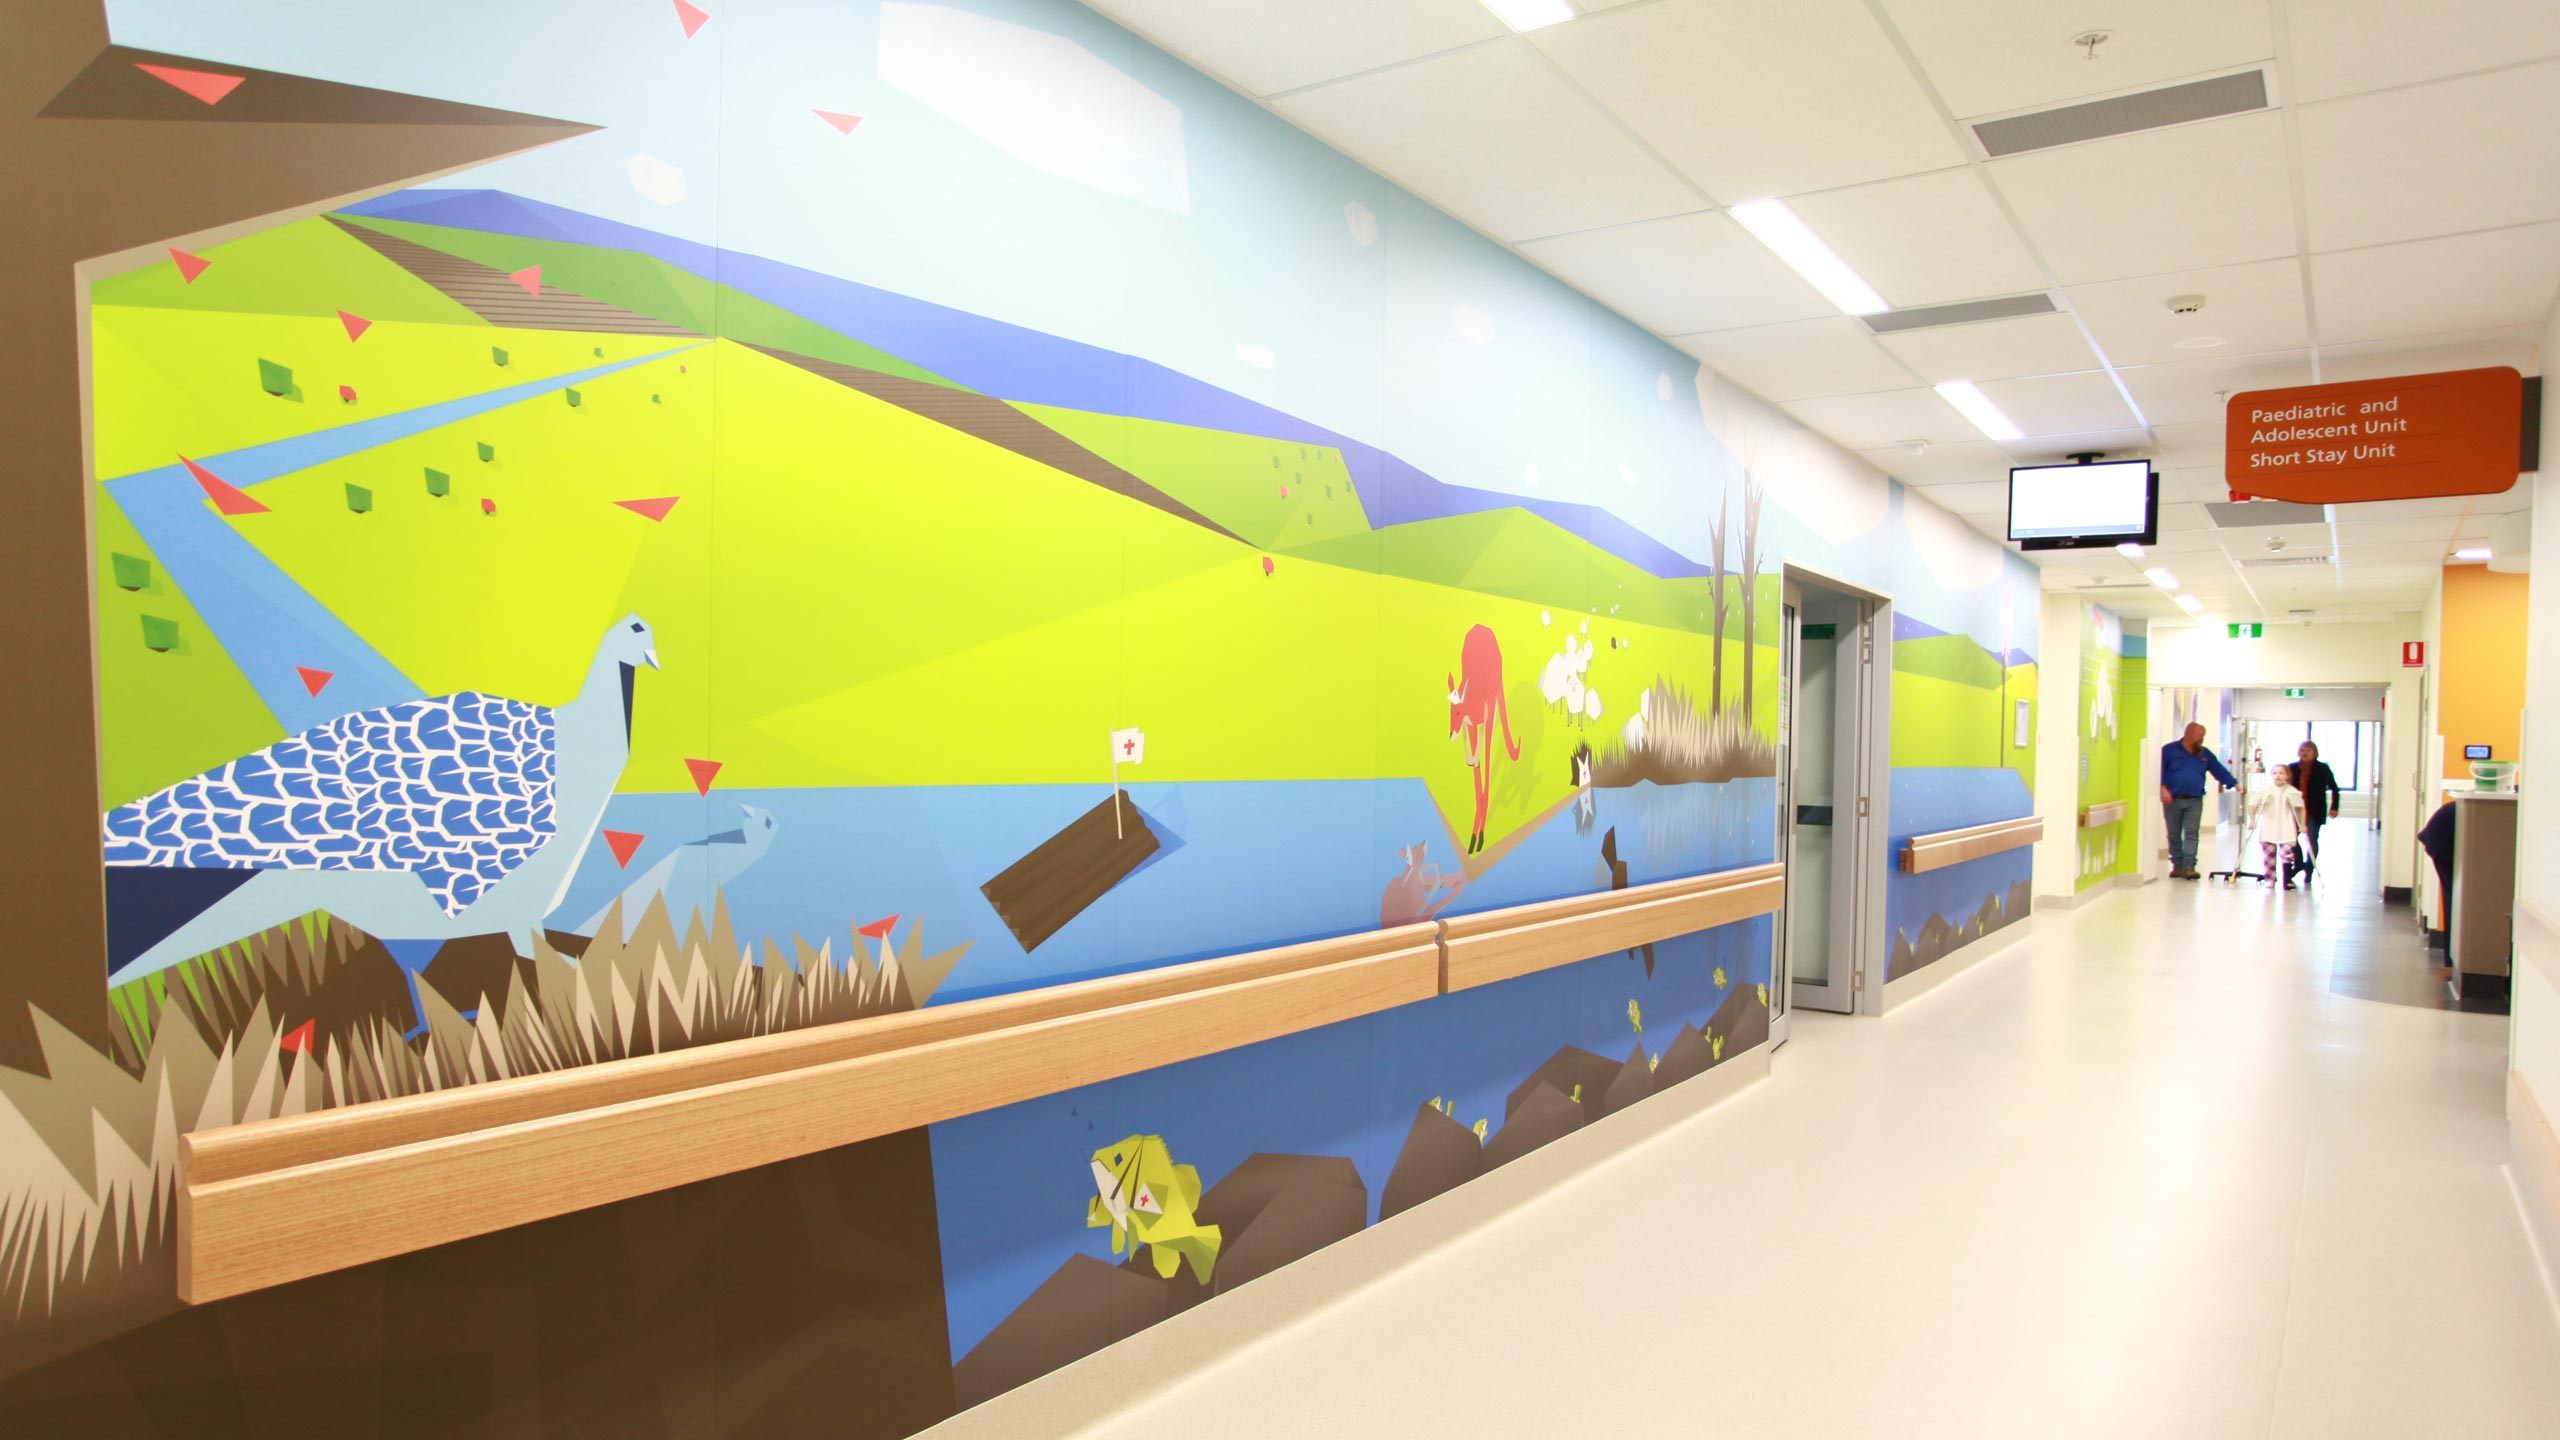 Rachel was selected by the Murrumbidgee Local Health District (MLHD) Arts Strategy Panel to transform 140m2 of space in the Wagga Wagga Rural Referral Hospital Children's Ward into a healing and hopeful environment using graphic vinyl. The artwork allows staff, patients and visitors to step inside a giant children's book and follow a timid malleefowl named Mallie on his adventure. Mallie's story unfolds as you move through the ward, with animals representing doctors and nurses helping him on his journey.